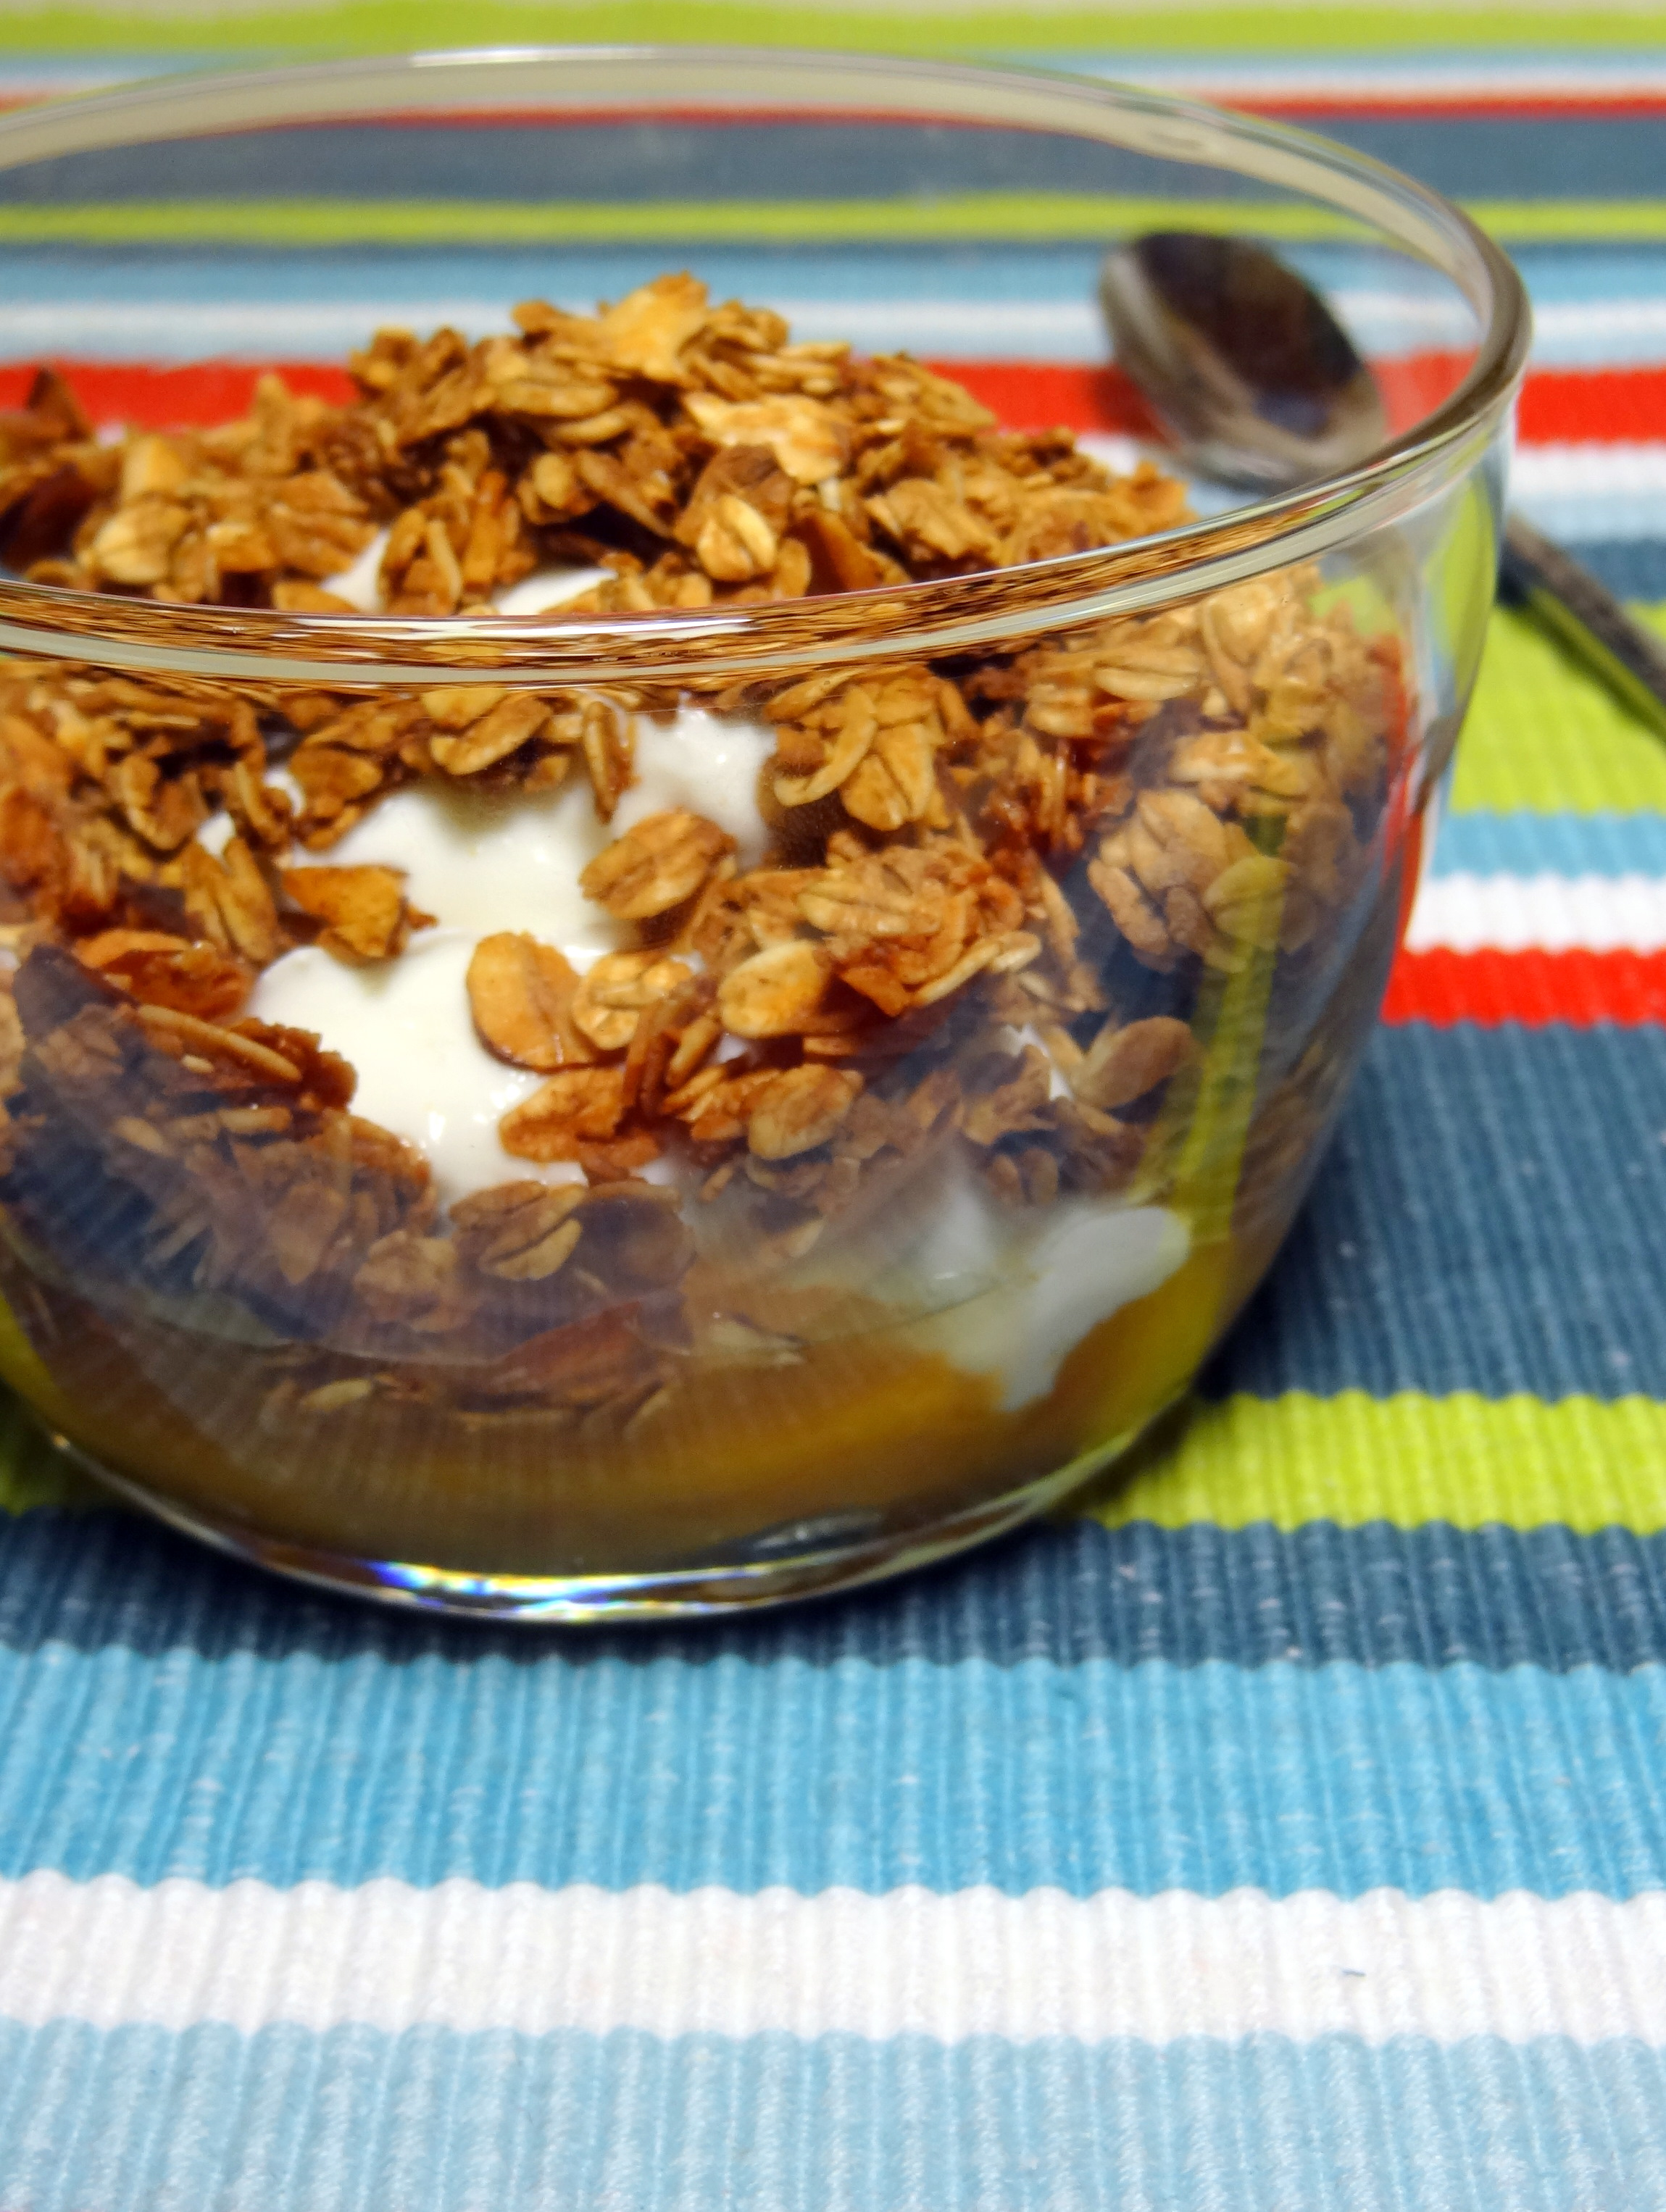 homemade granola and apricot compote